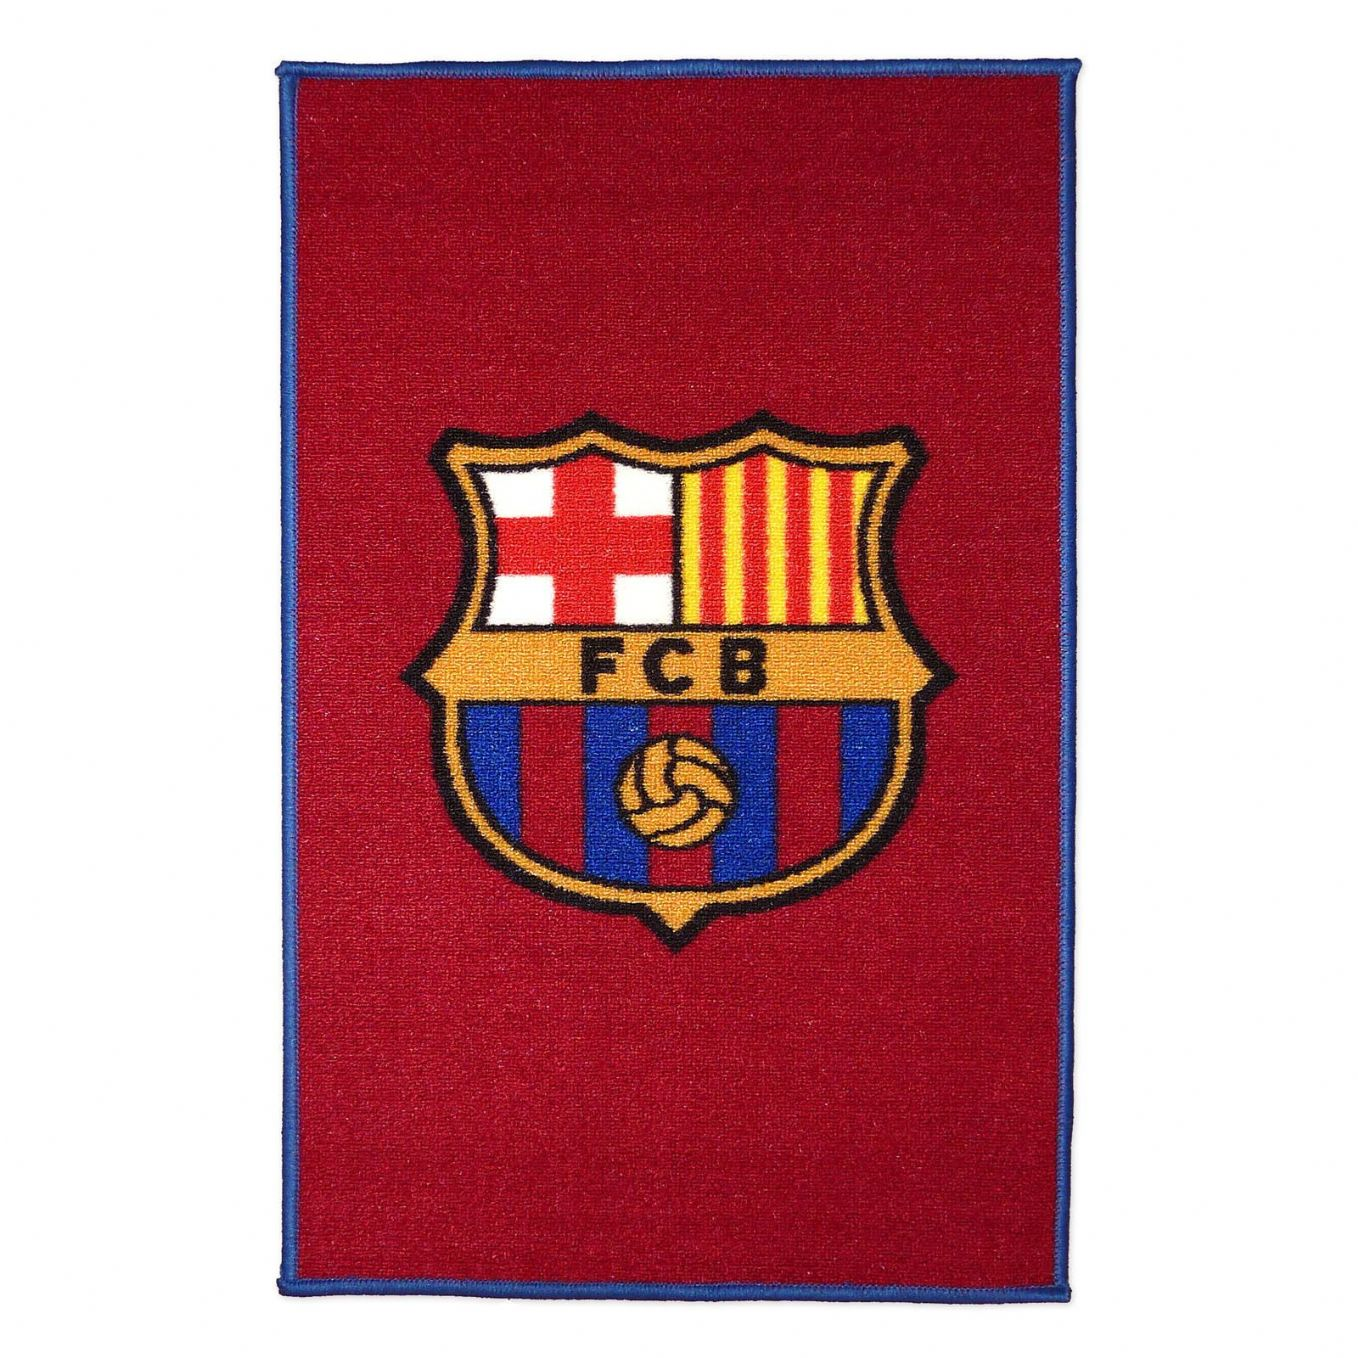 BARCELONA FOOTBALL CLUB CREST FLOOR MAT RUG